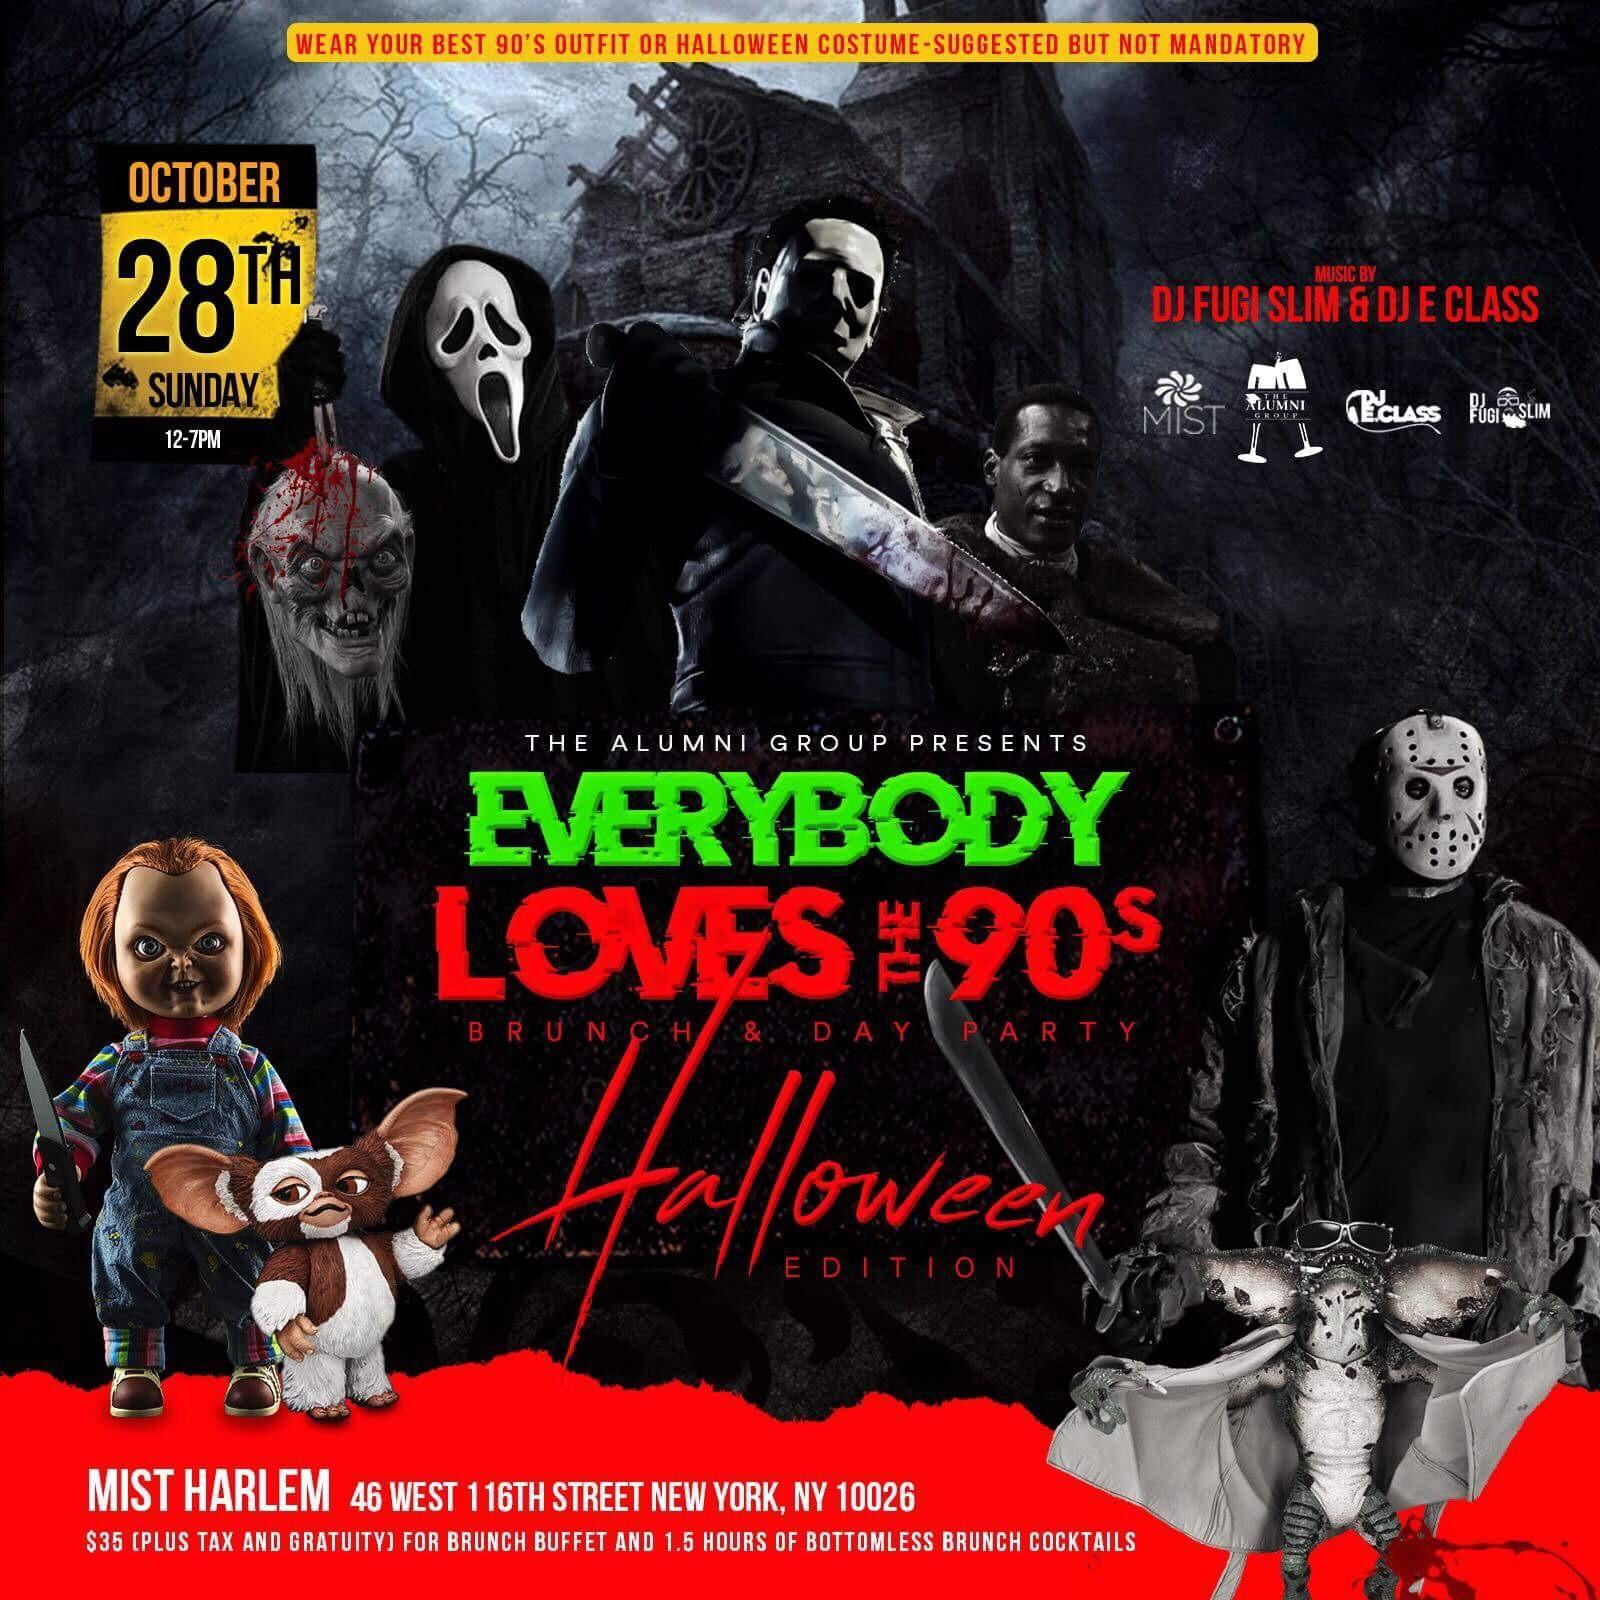 Everybody Loves The 90's Brunch & Day Party - Halloween Edition